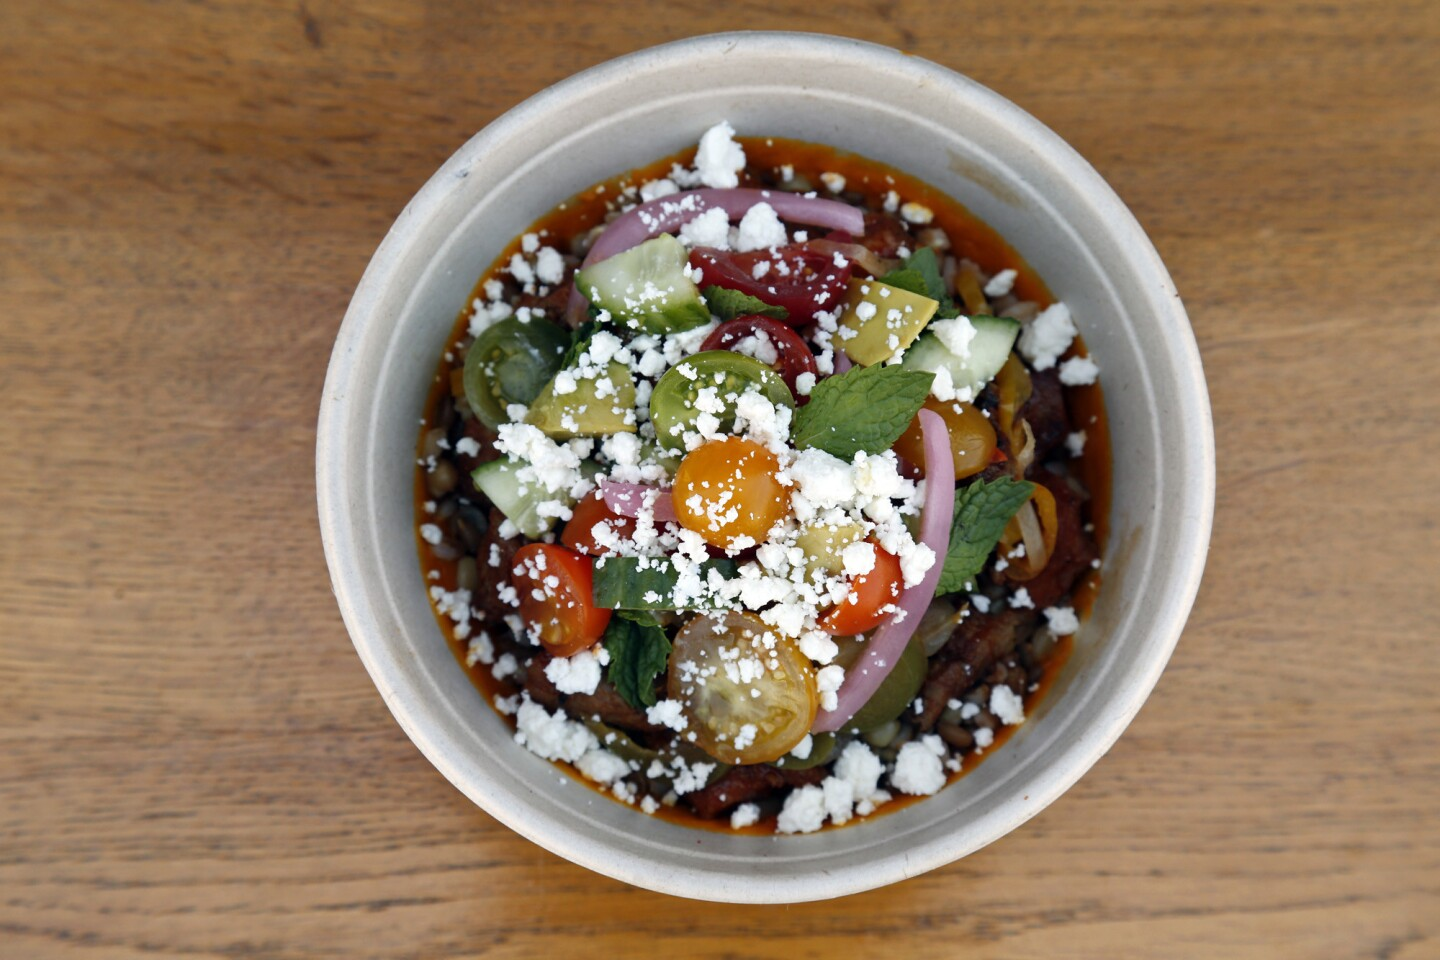 Four chefs offer grain bowls and an 'ugly fruit drank' at Pico House food truck